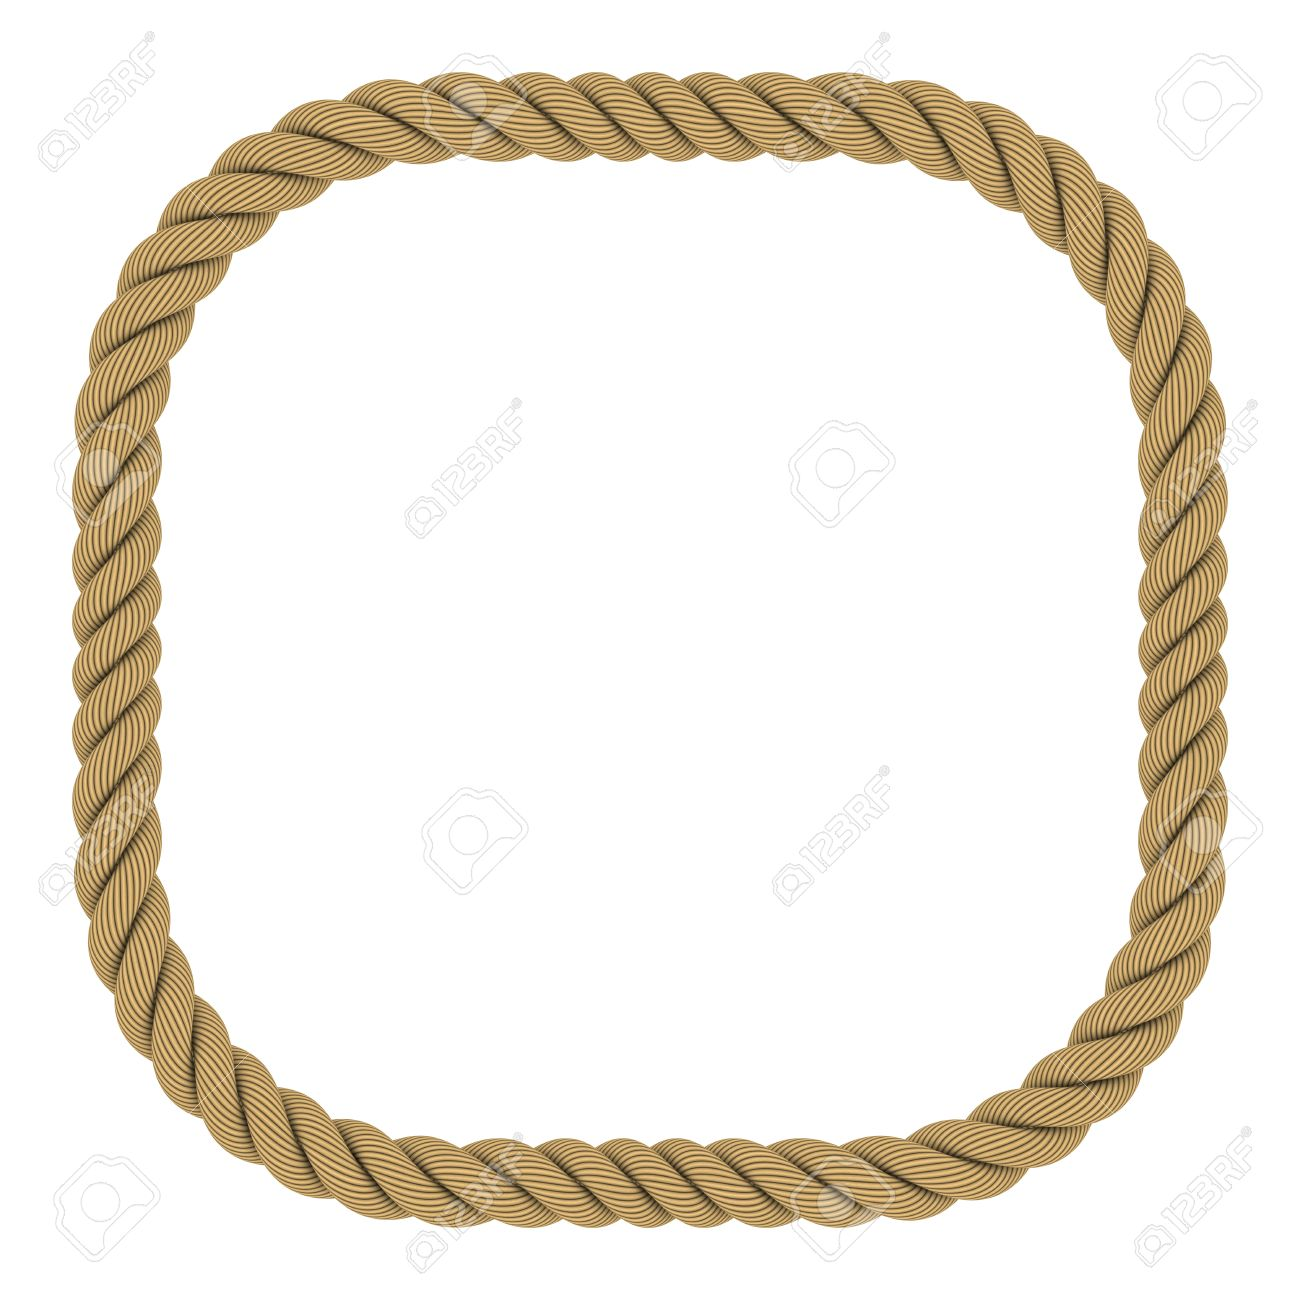 rounded square rope frame isolated on white background stock photo 51619361